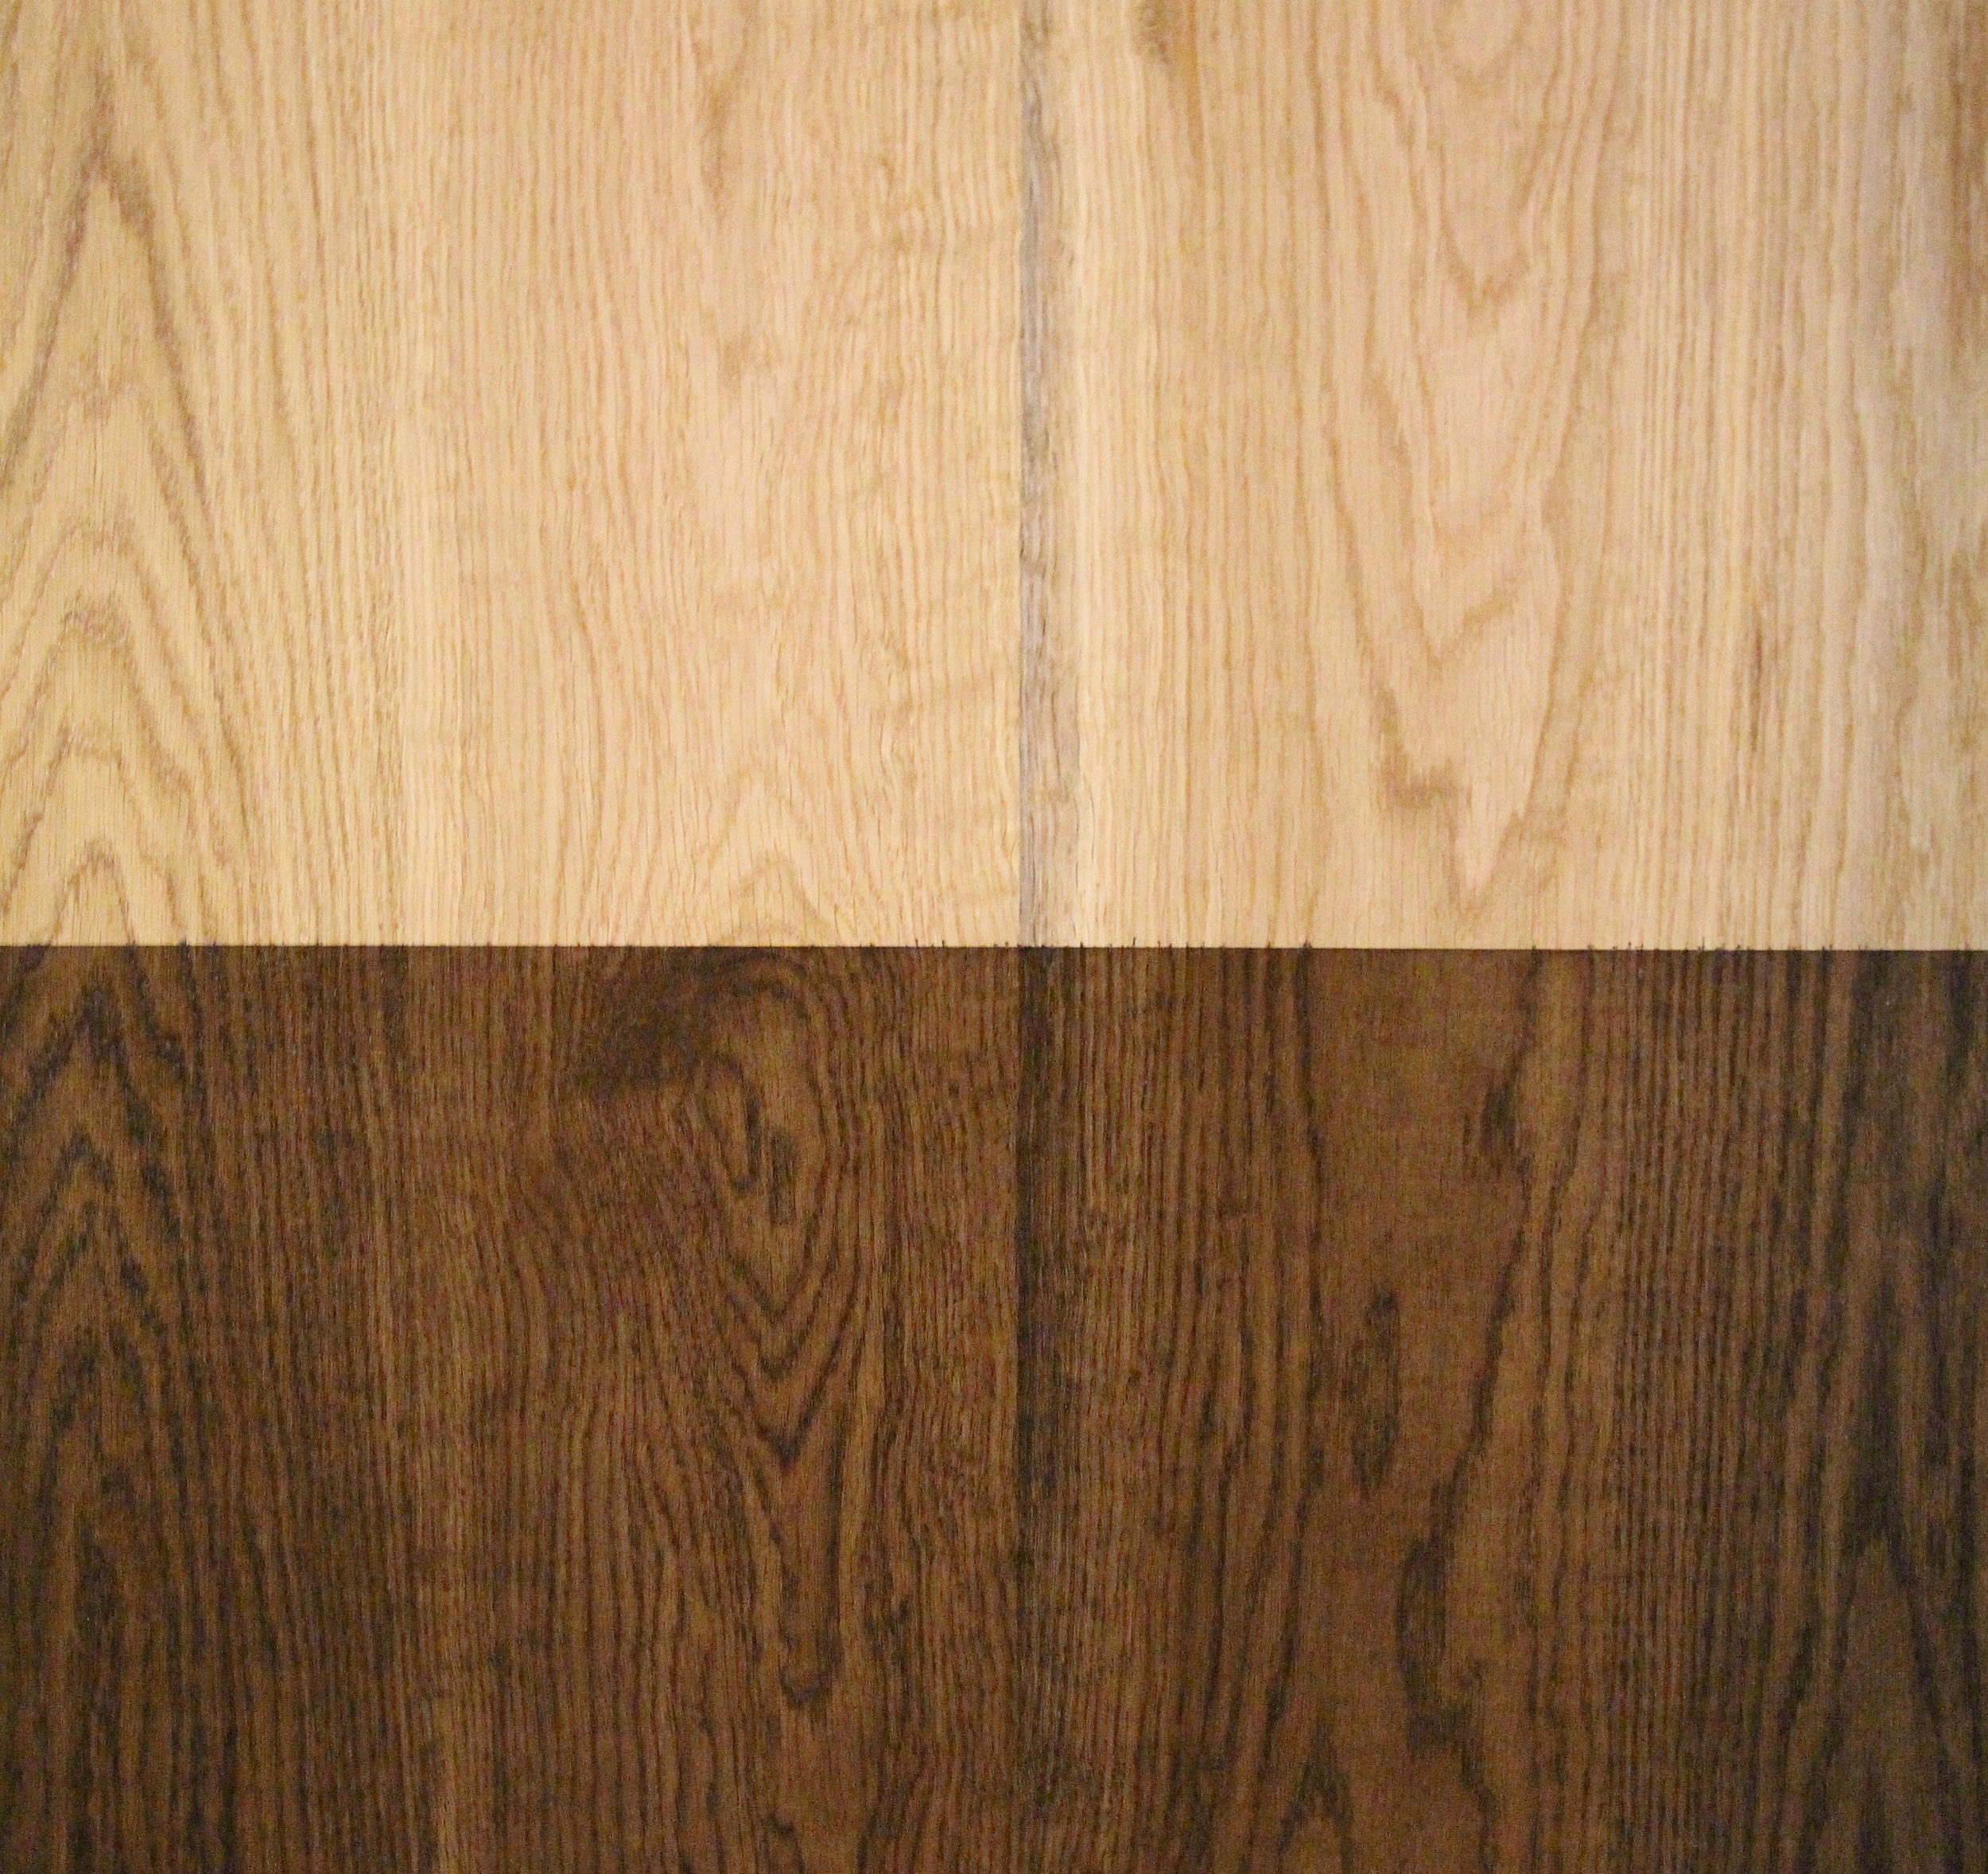 SUSTAINABLY HARVESTED OAK        NATURAL / WALNUT STAIN